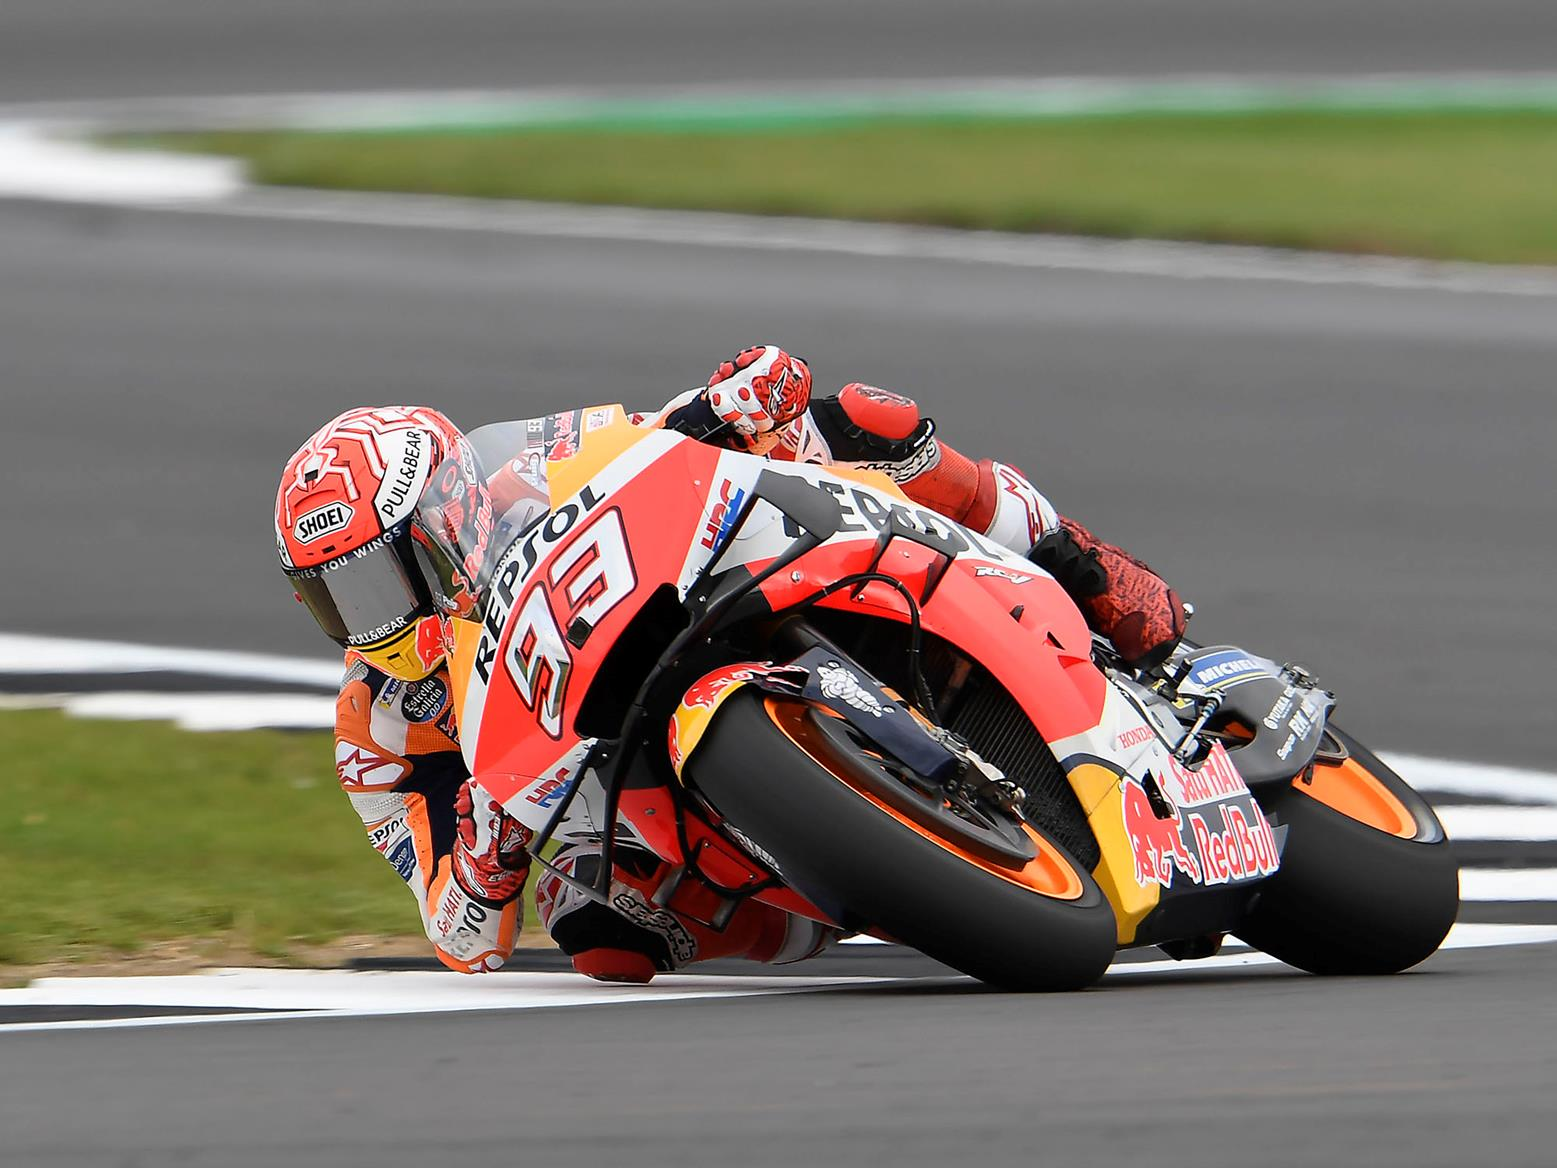 Marc Marquez tops FP4 at Silverstone